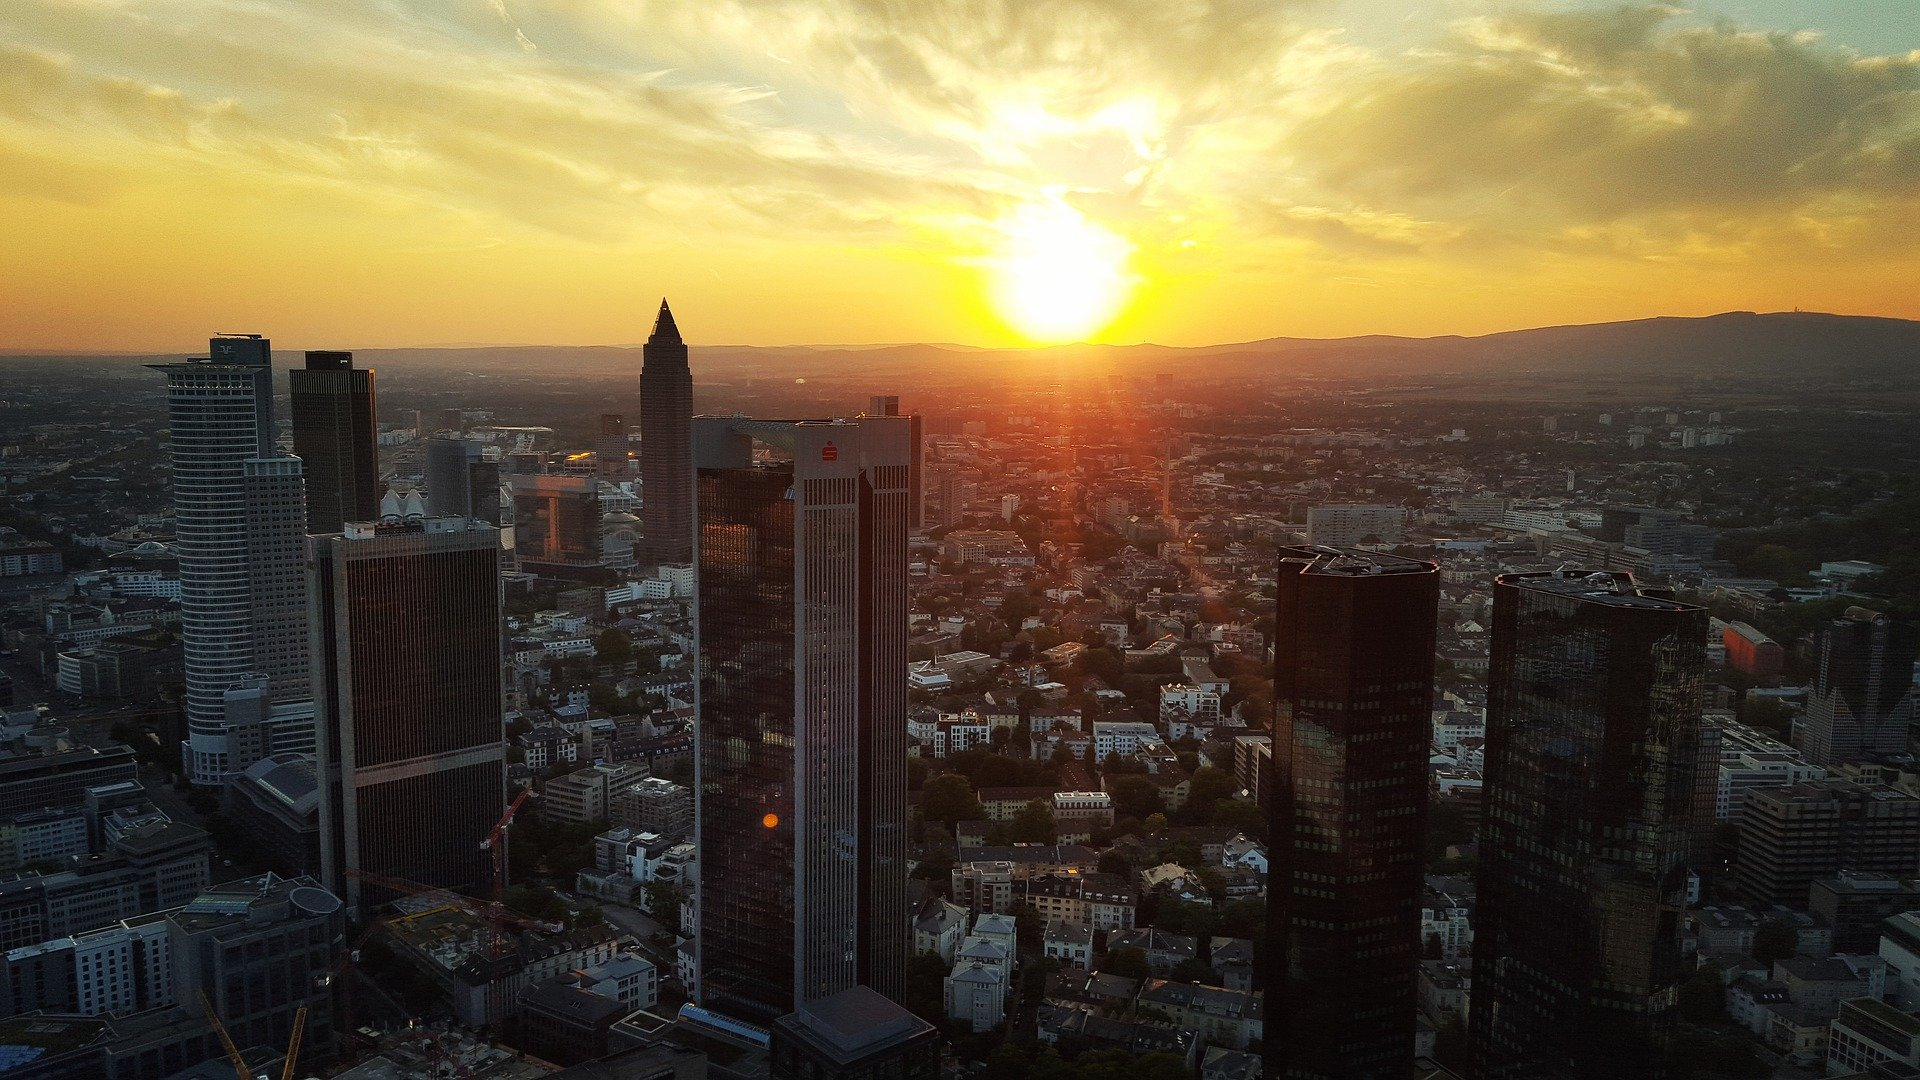 Frankfurt High Risers at Sunset